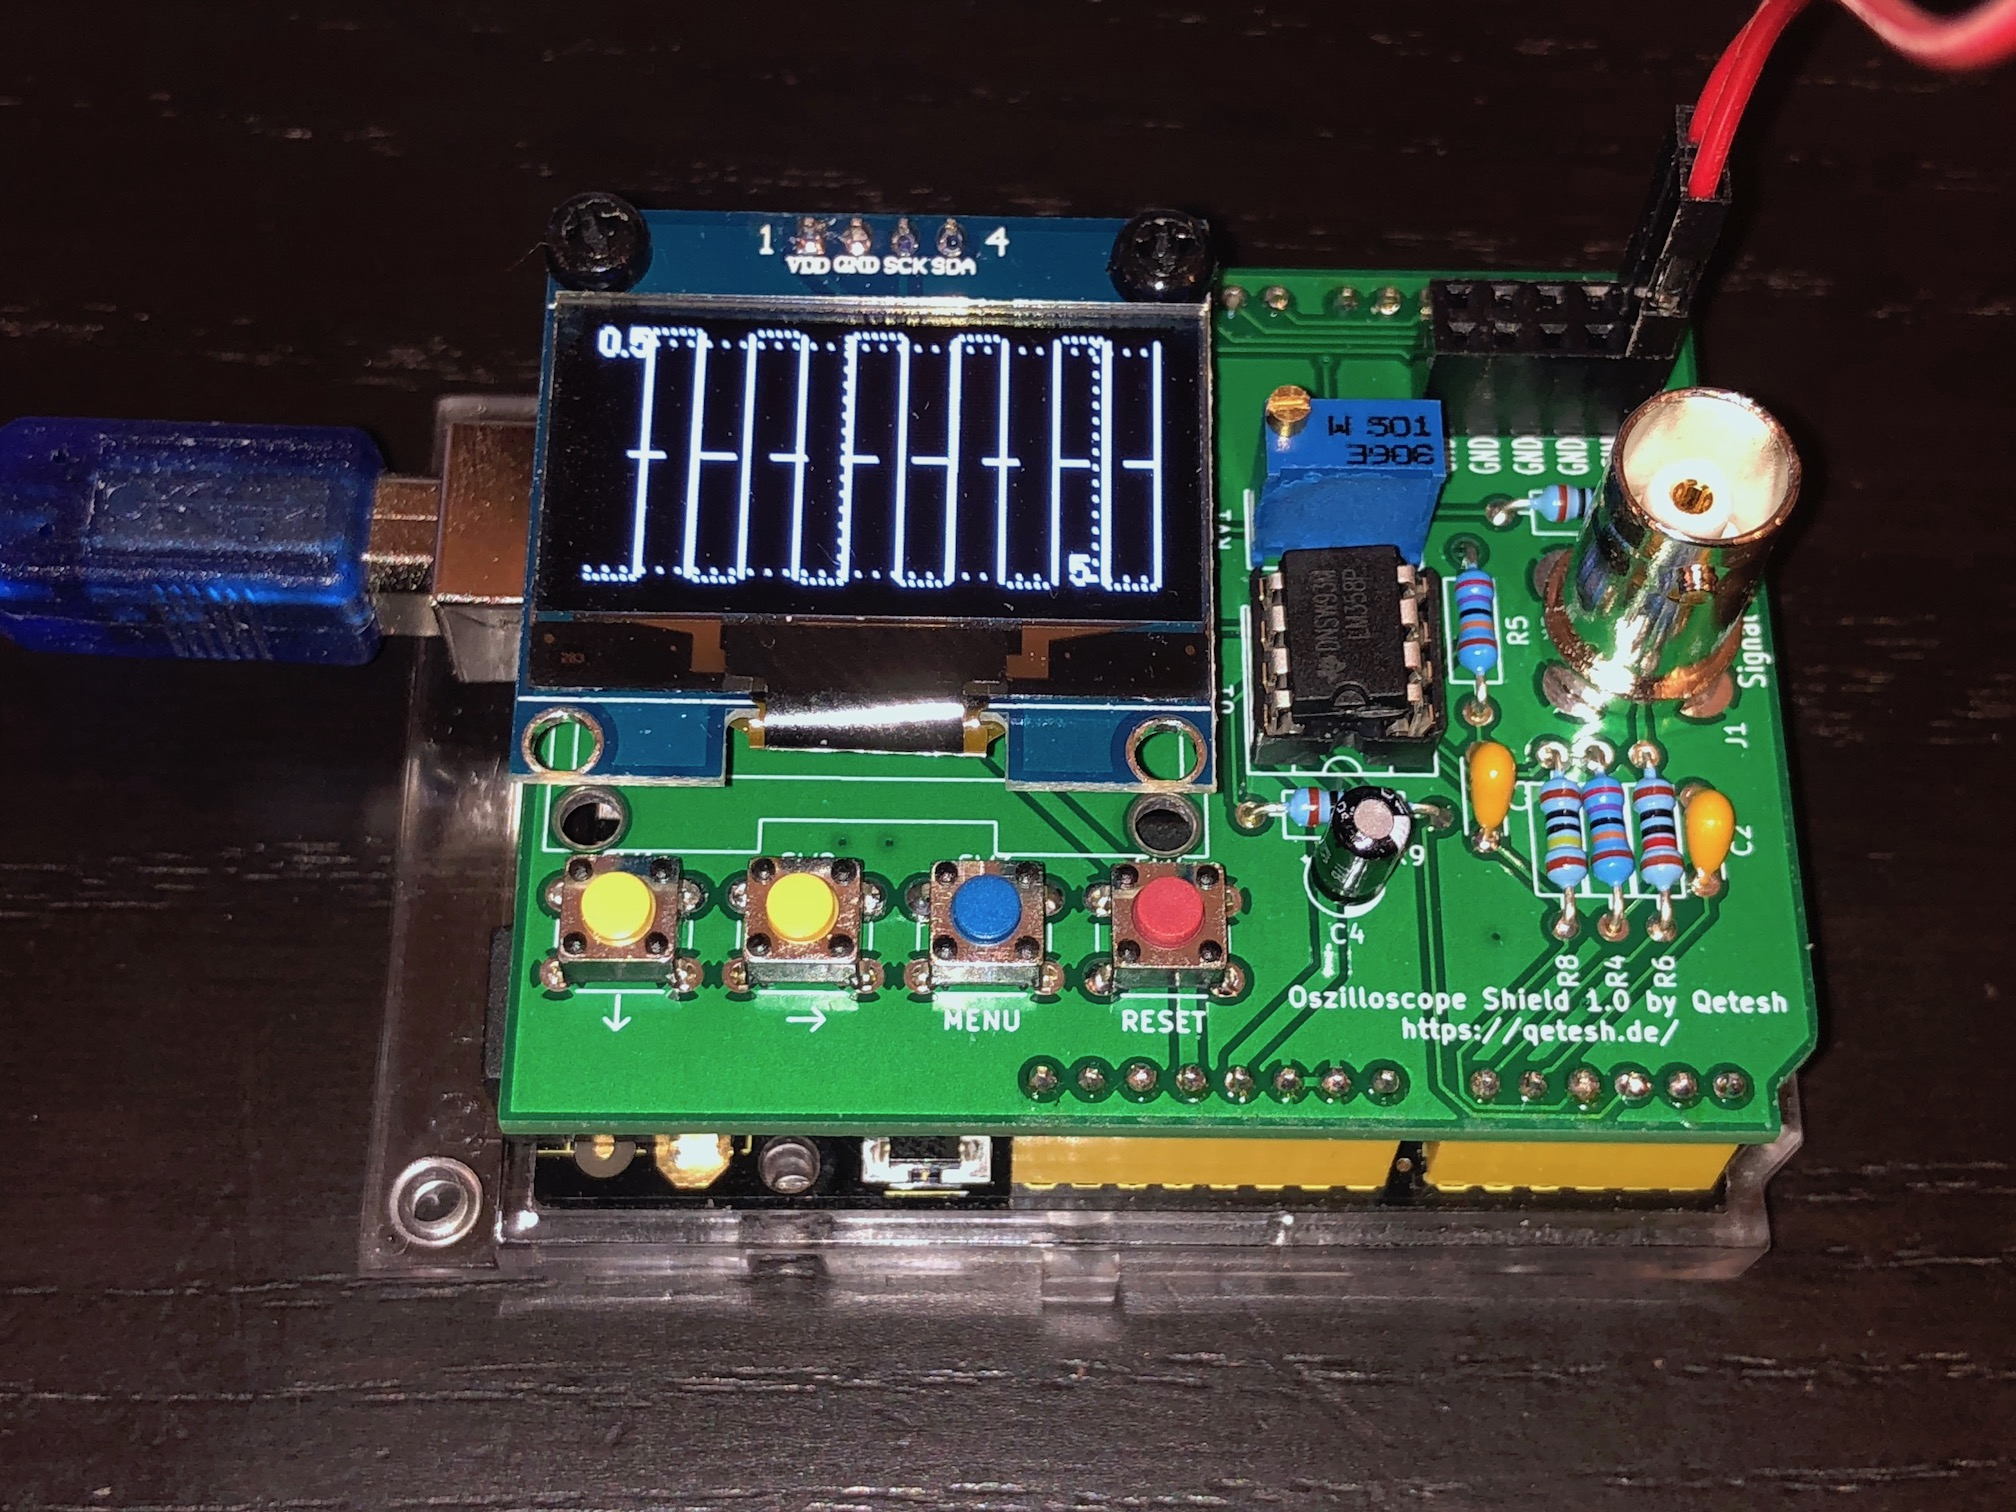 V1 Measuring the built-in signal generator